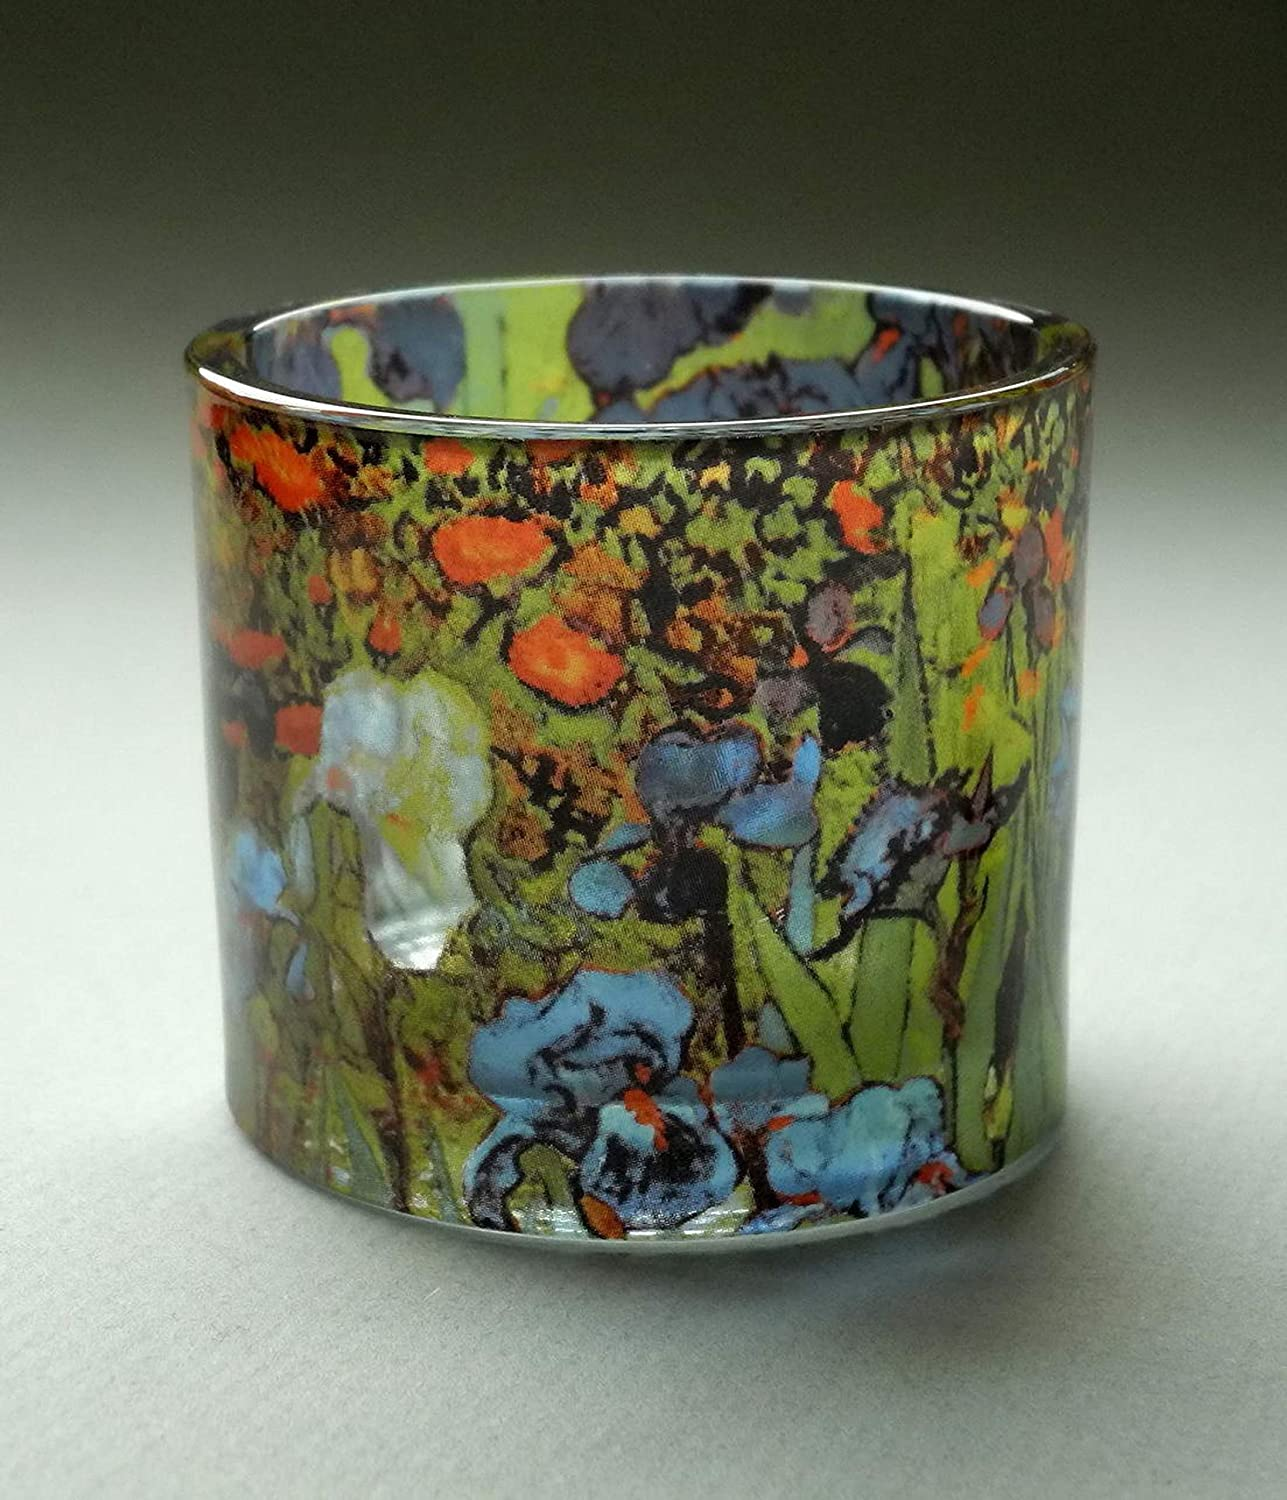 Van Gogh Irises Flowers Glass Tealight Candle Holder with Candle 2.3H